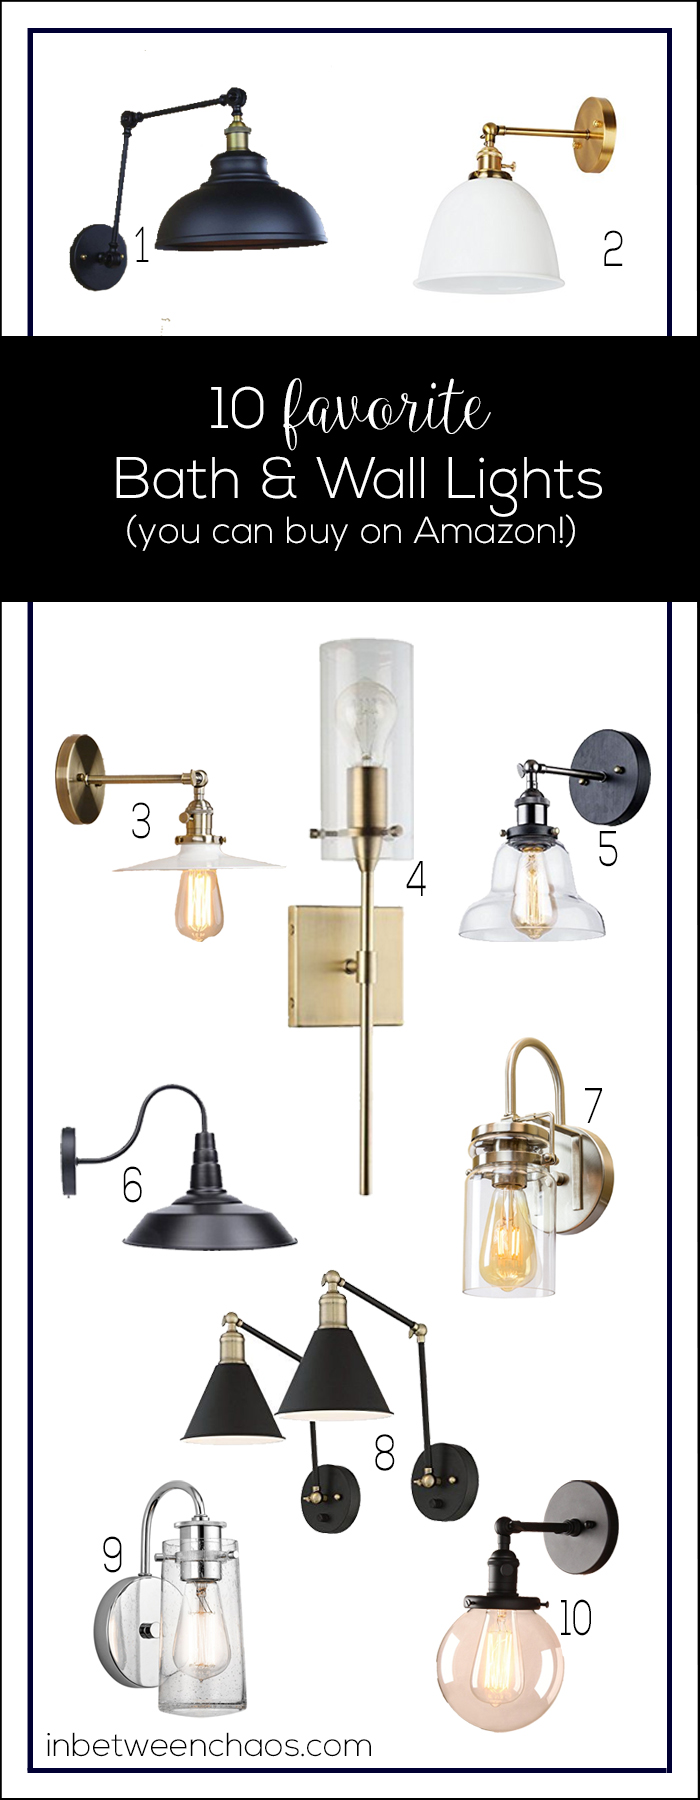 Favorite Bath & Wall Lights | inbetweenchaos.com